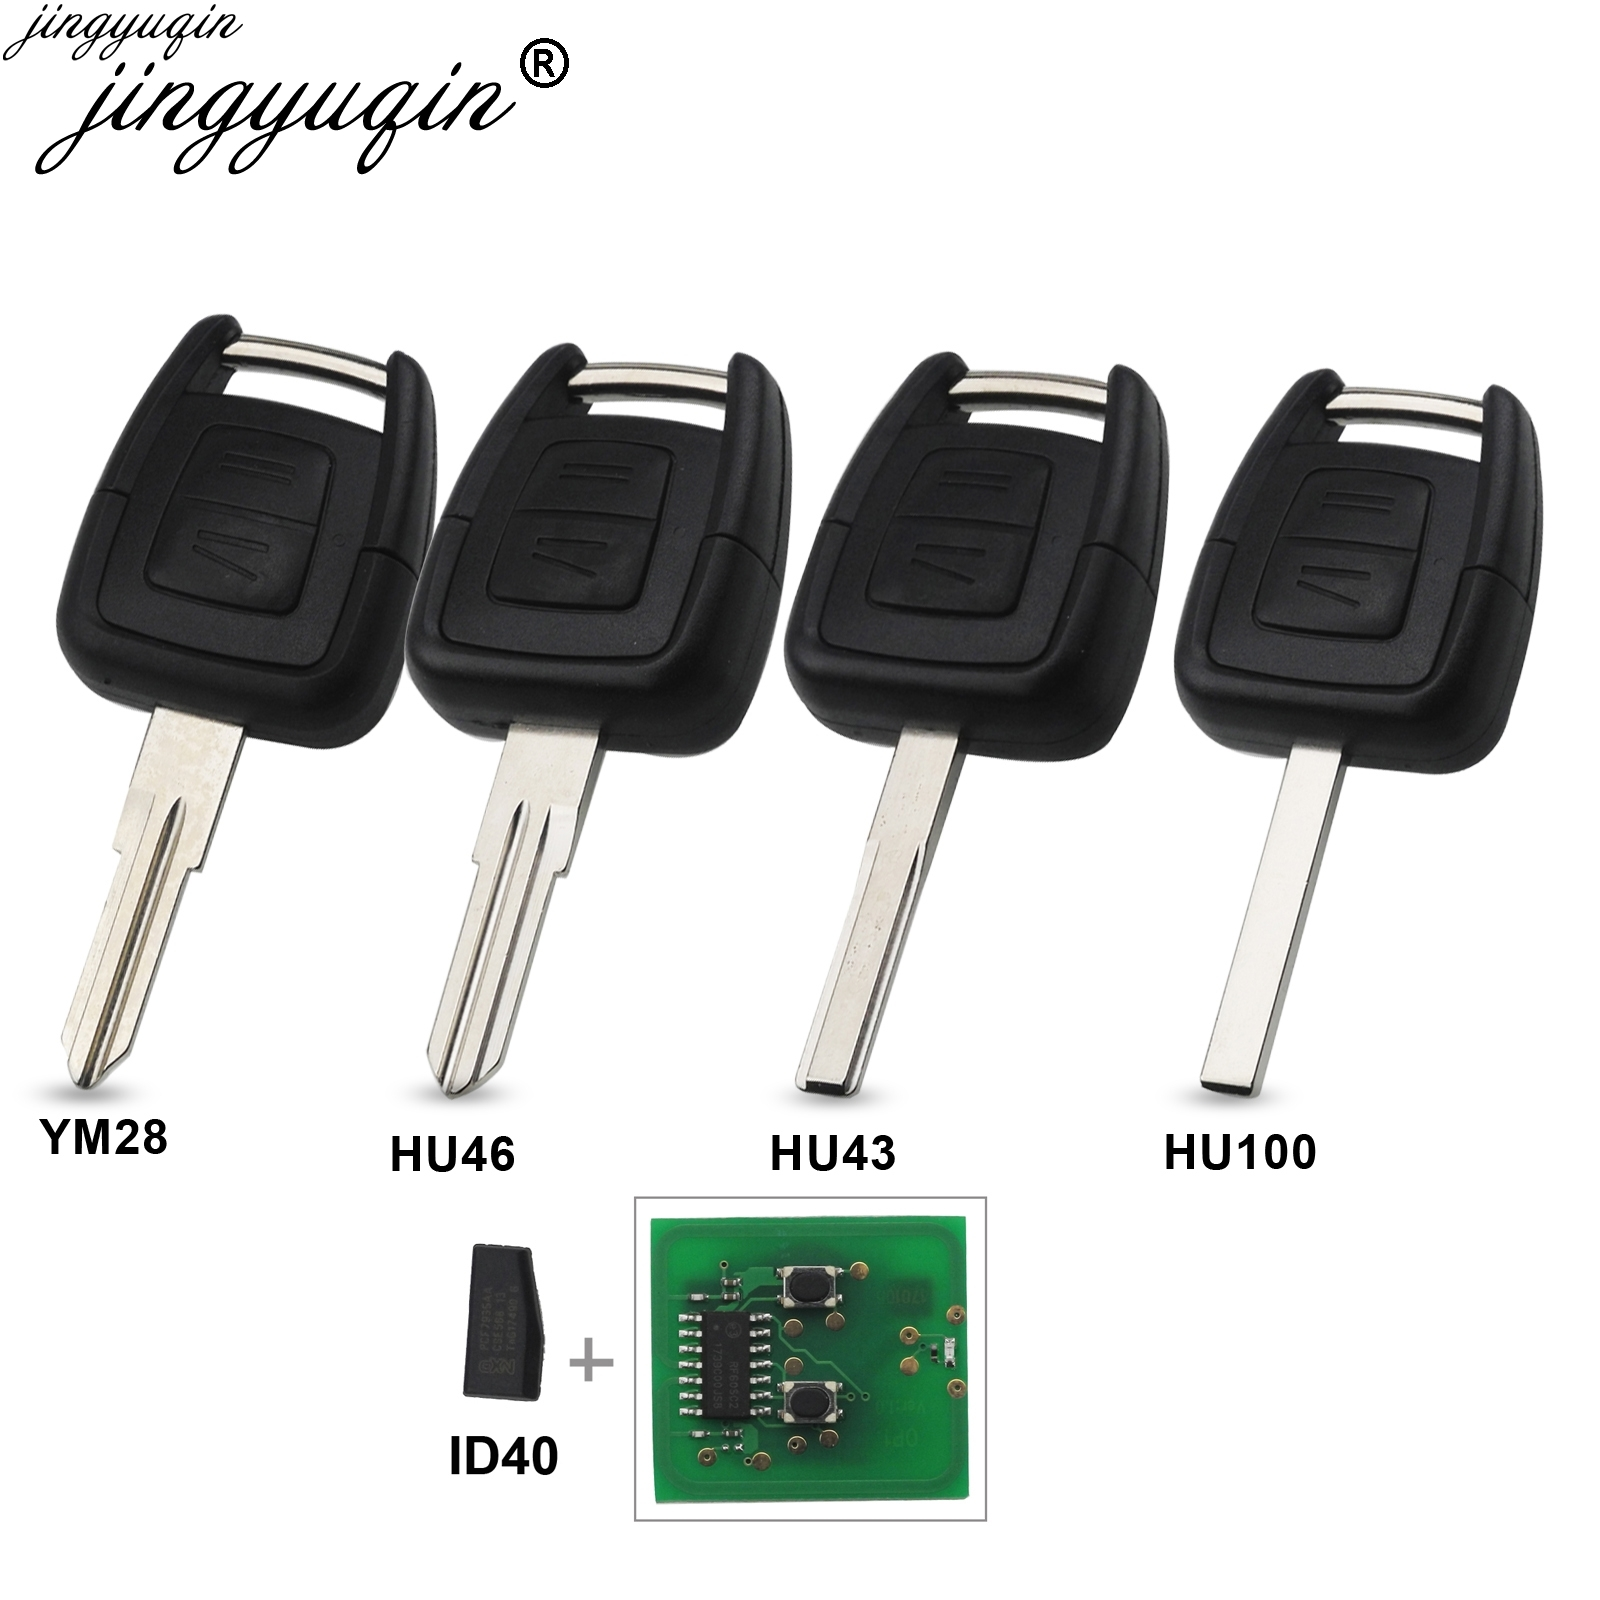 Transponder Key with ID40 chip for Vauxhall Opel Astra Zafira YM28 uncut blade